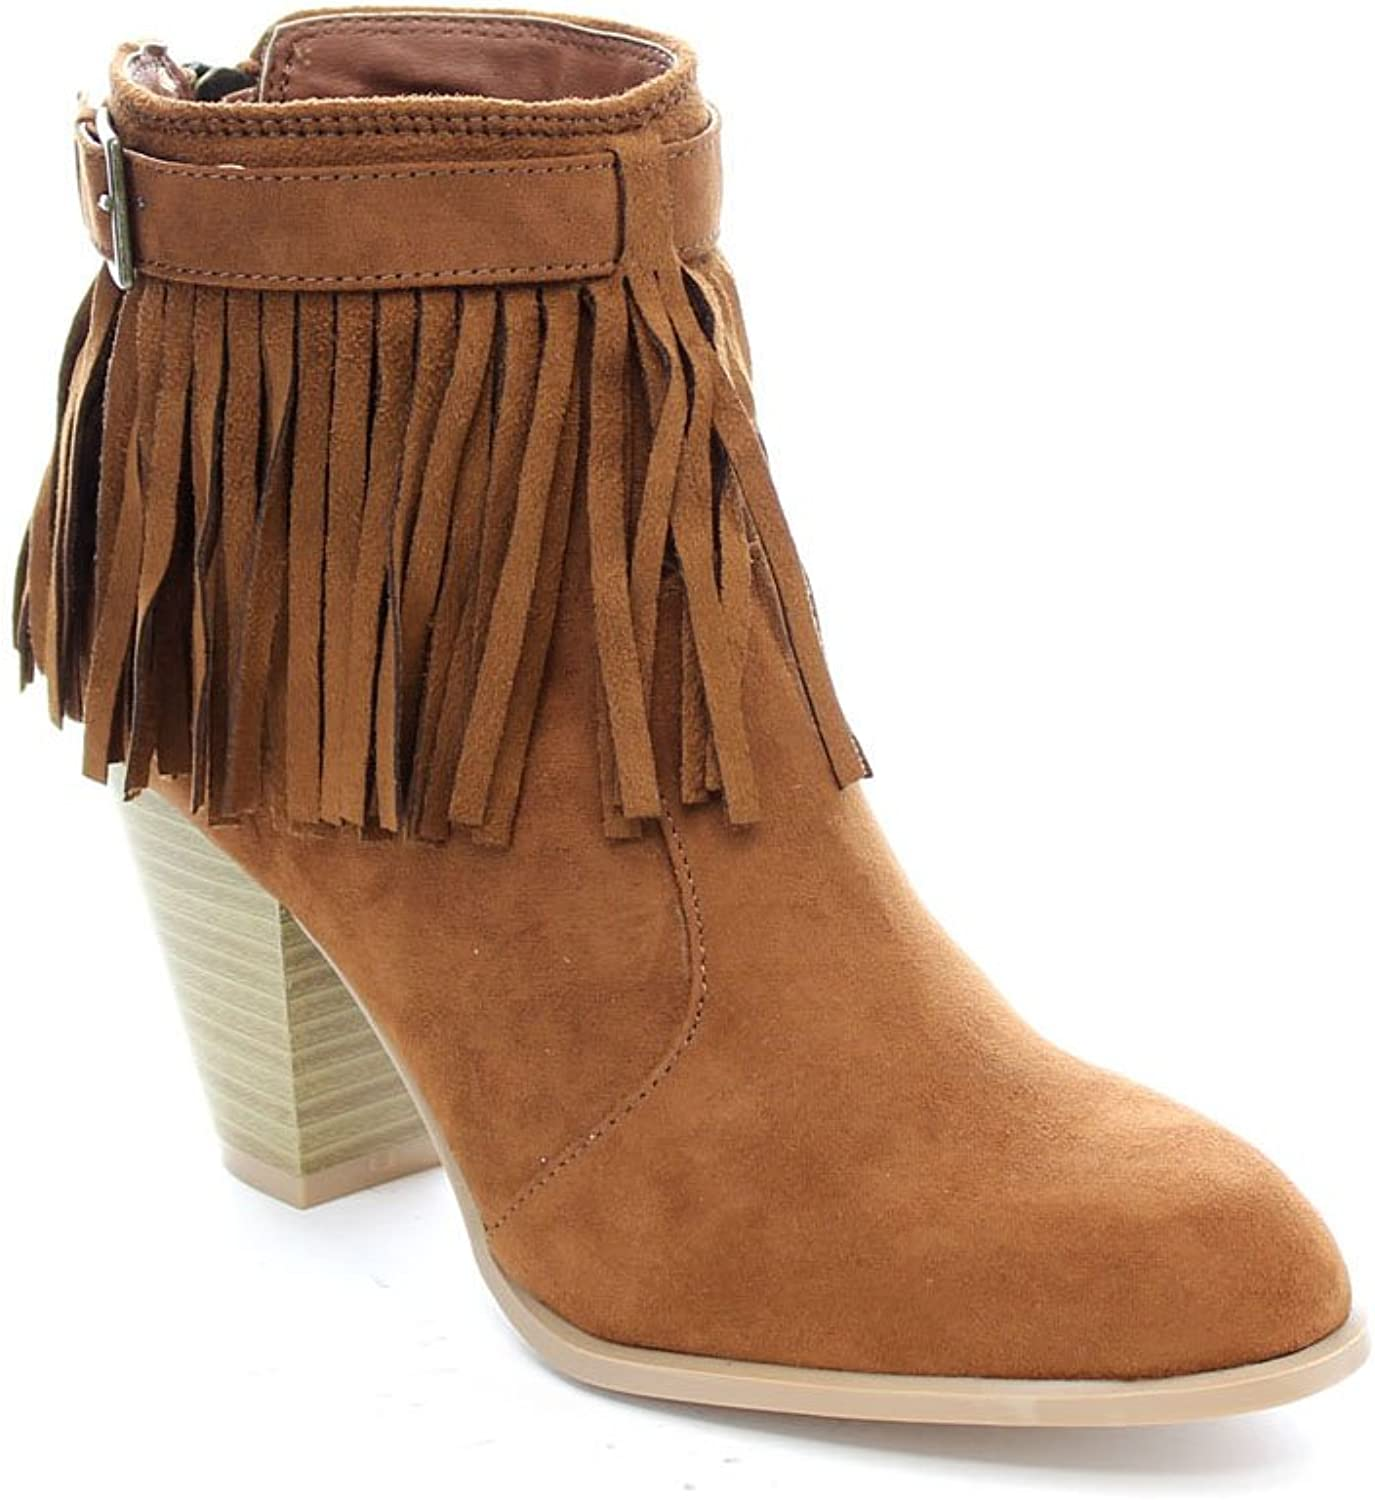 Qupid Salty-21X Women's Fringe Pointy Toe Stacked Chunky Heel Ankle Booties,Dark Rust,10